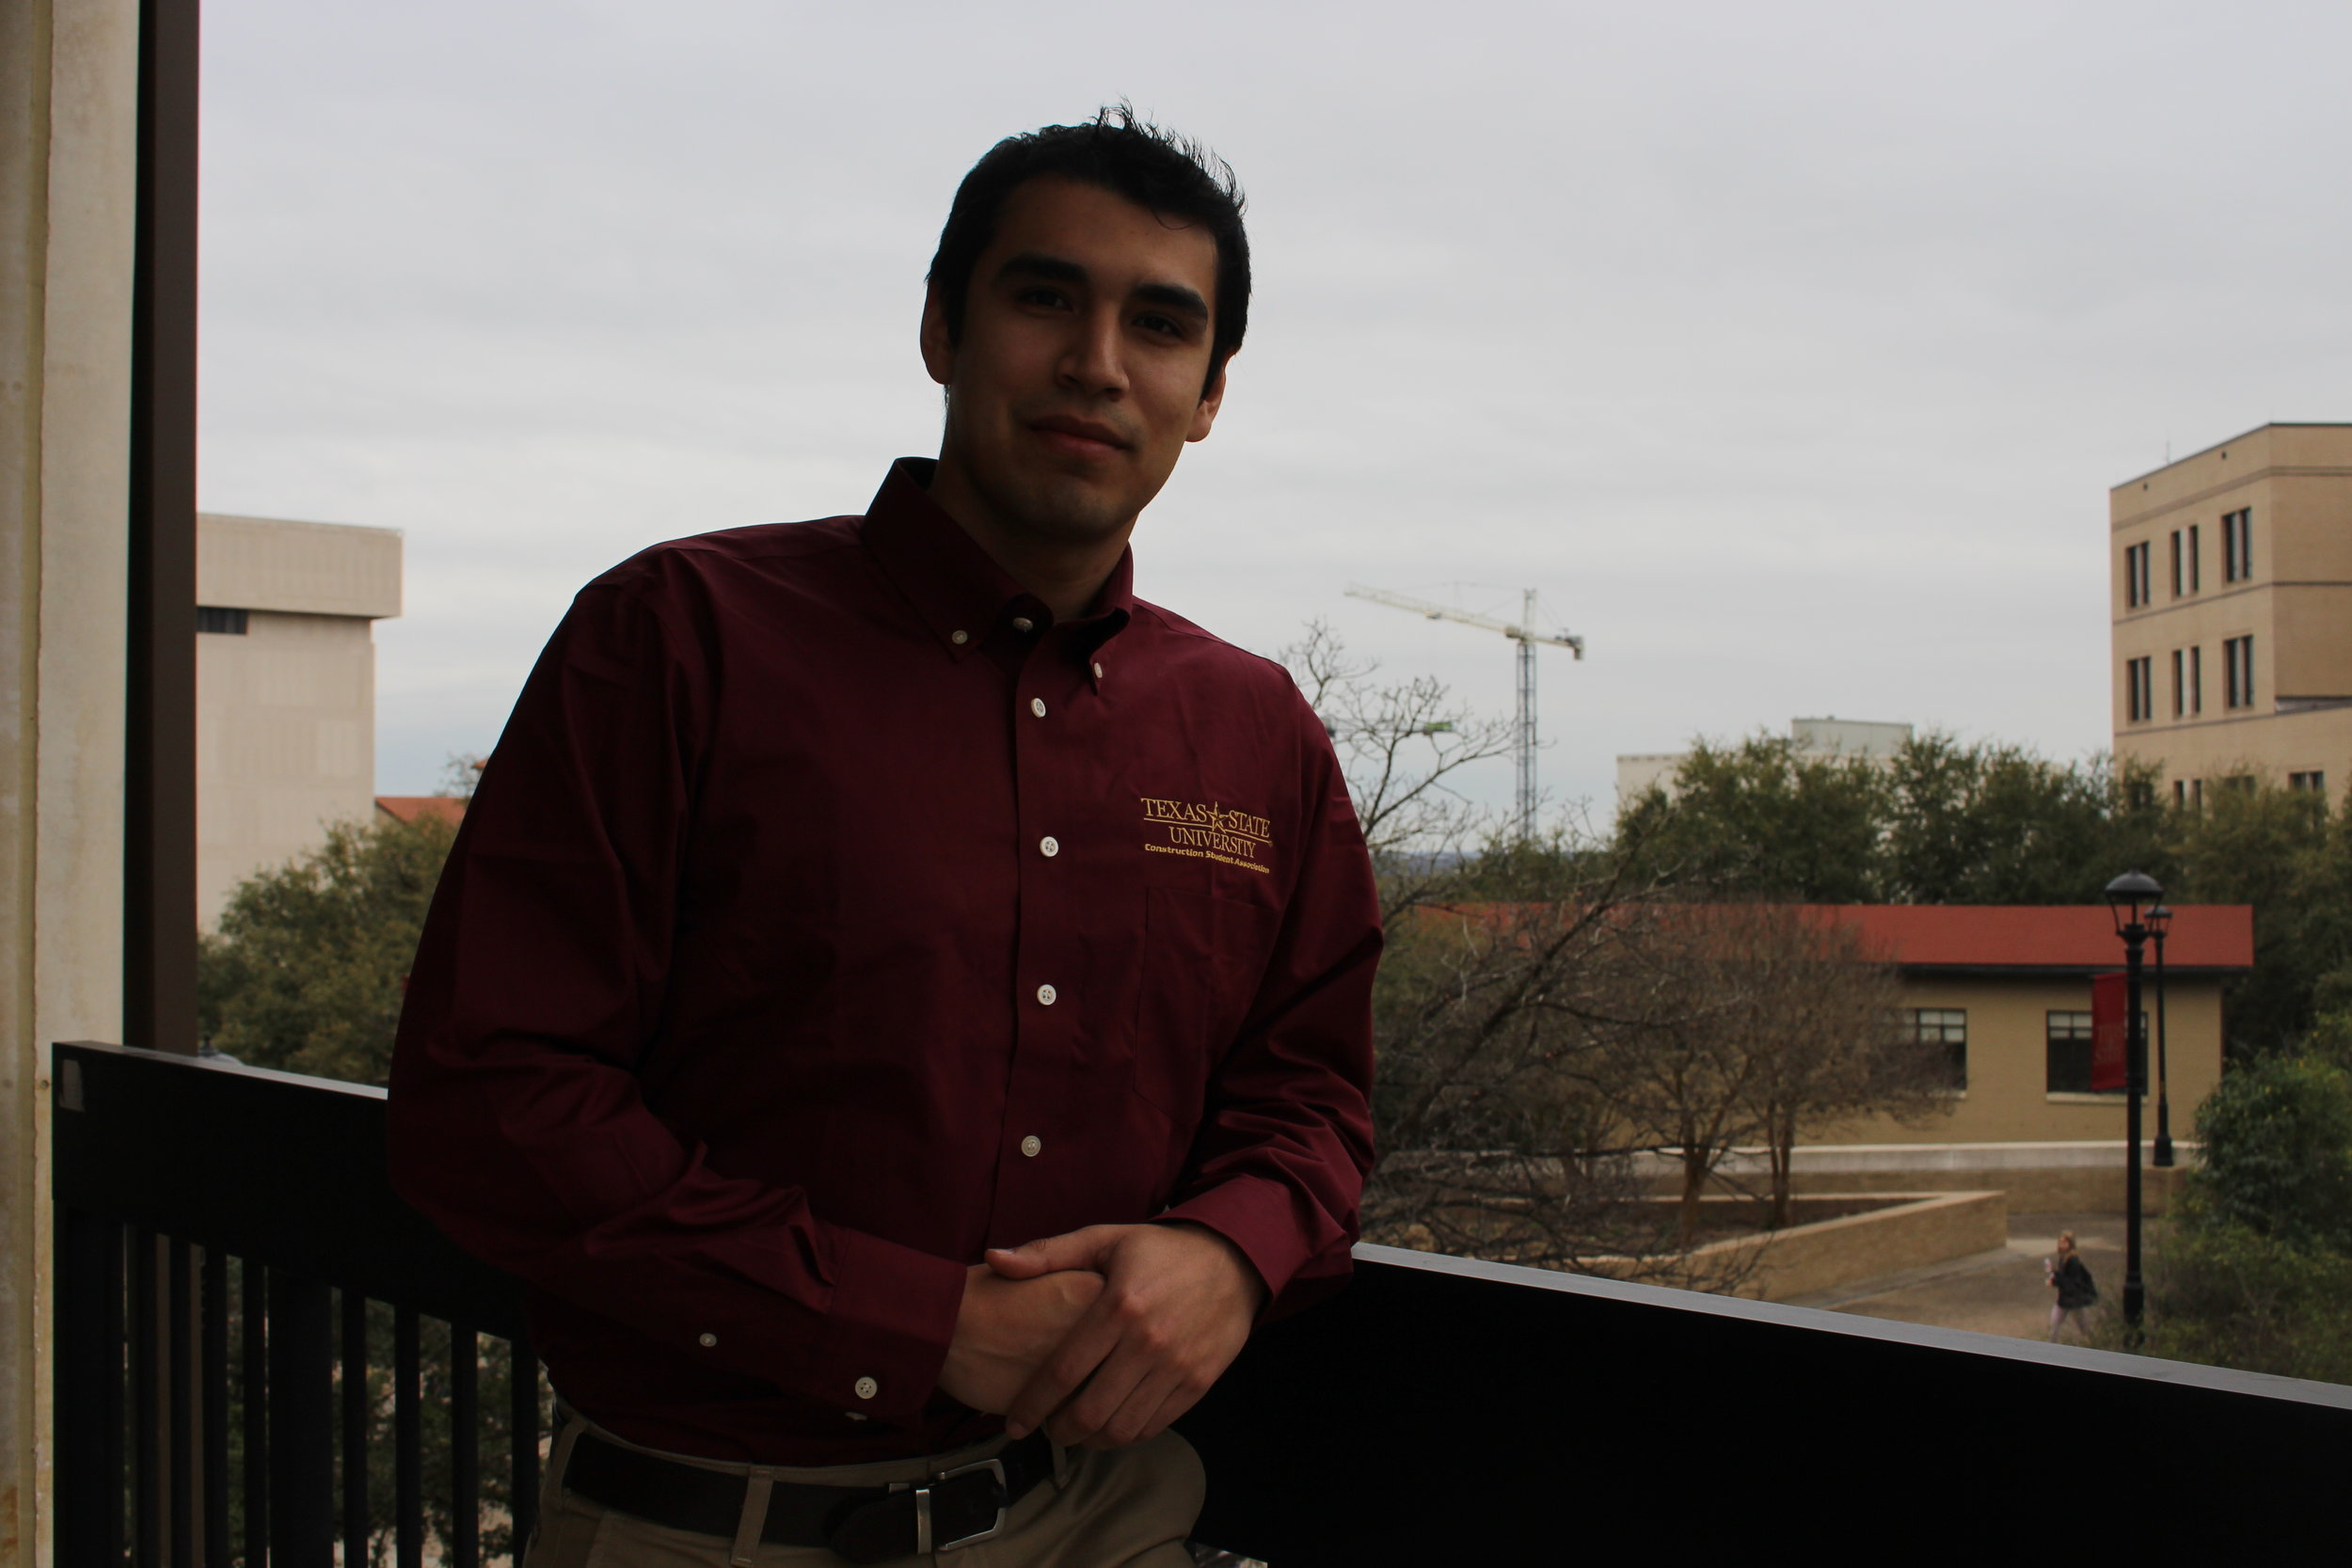 Treasurer -Darrin Tinajero - Hometown: San Antonio, TxGraduation: Fall 2020Field of Interest: CommercialPast Experience: ASC and ABC CompetitionsTasks: Responsible for managing CSA budgets and expenses. Any purchases made must get the Treasurer's approval first.Contact: d_t276@txstate.edu